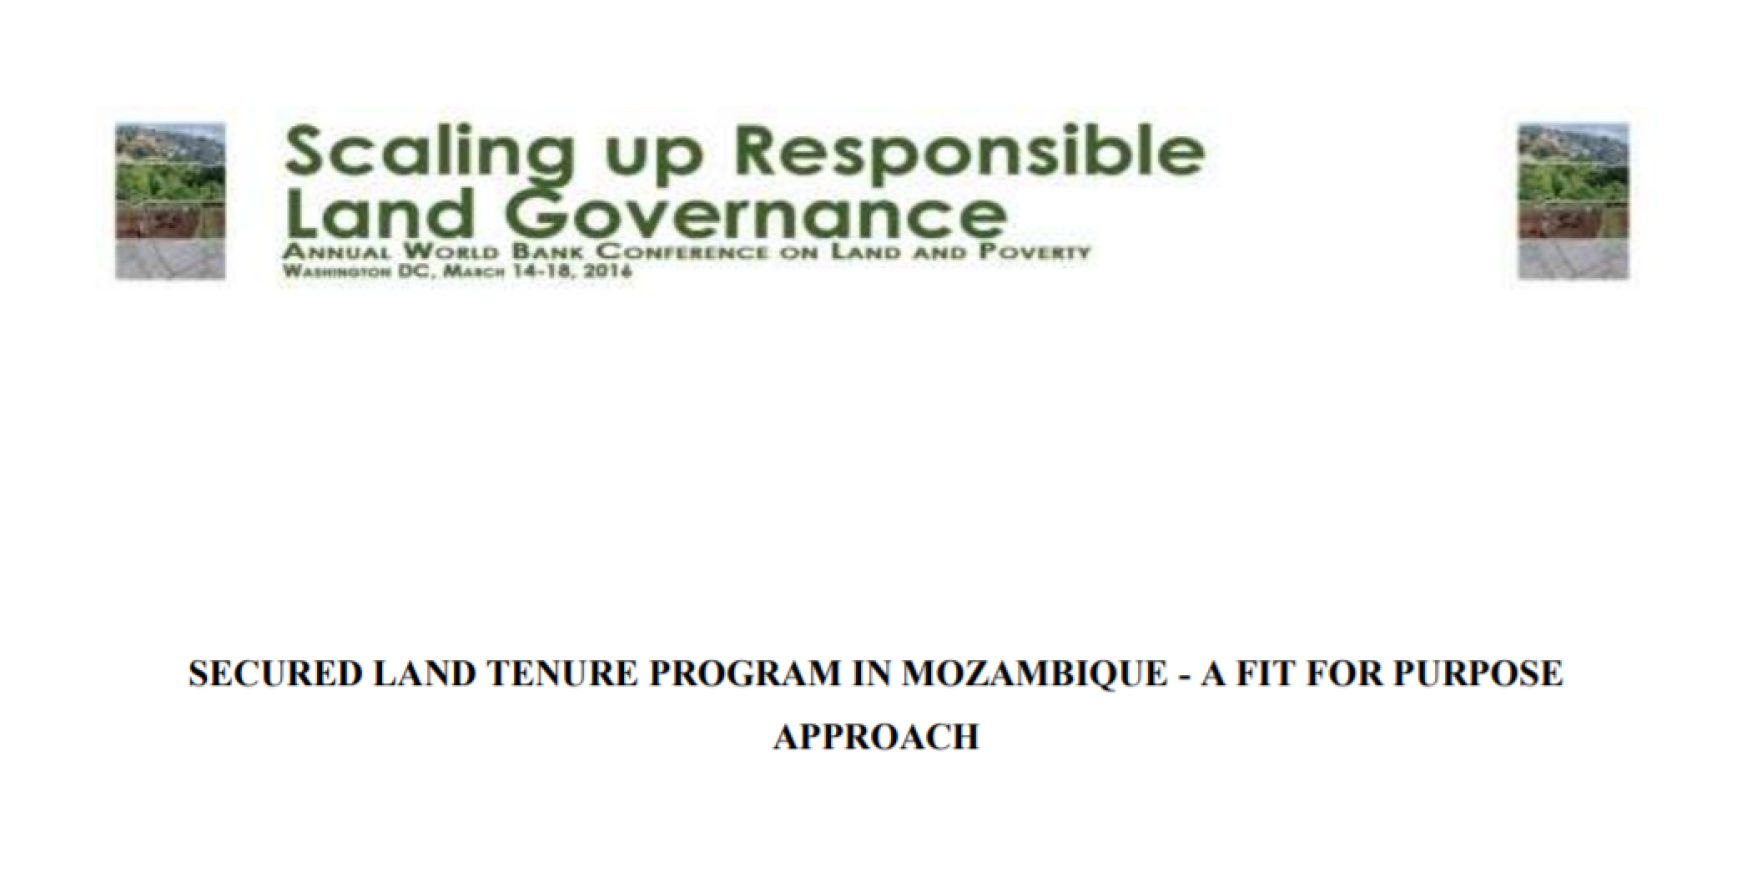 Terra Segura Program in Mozambique